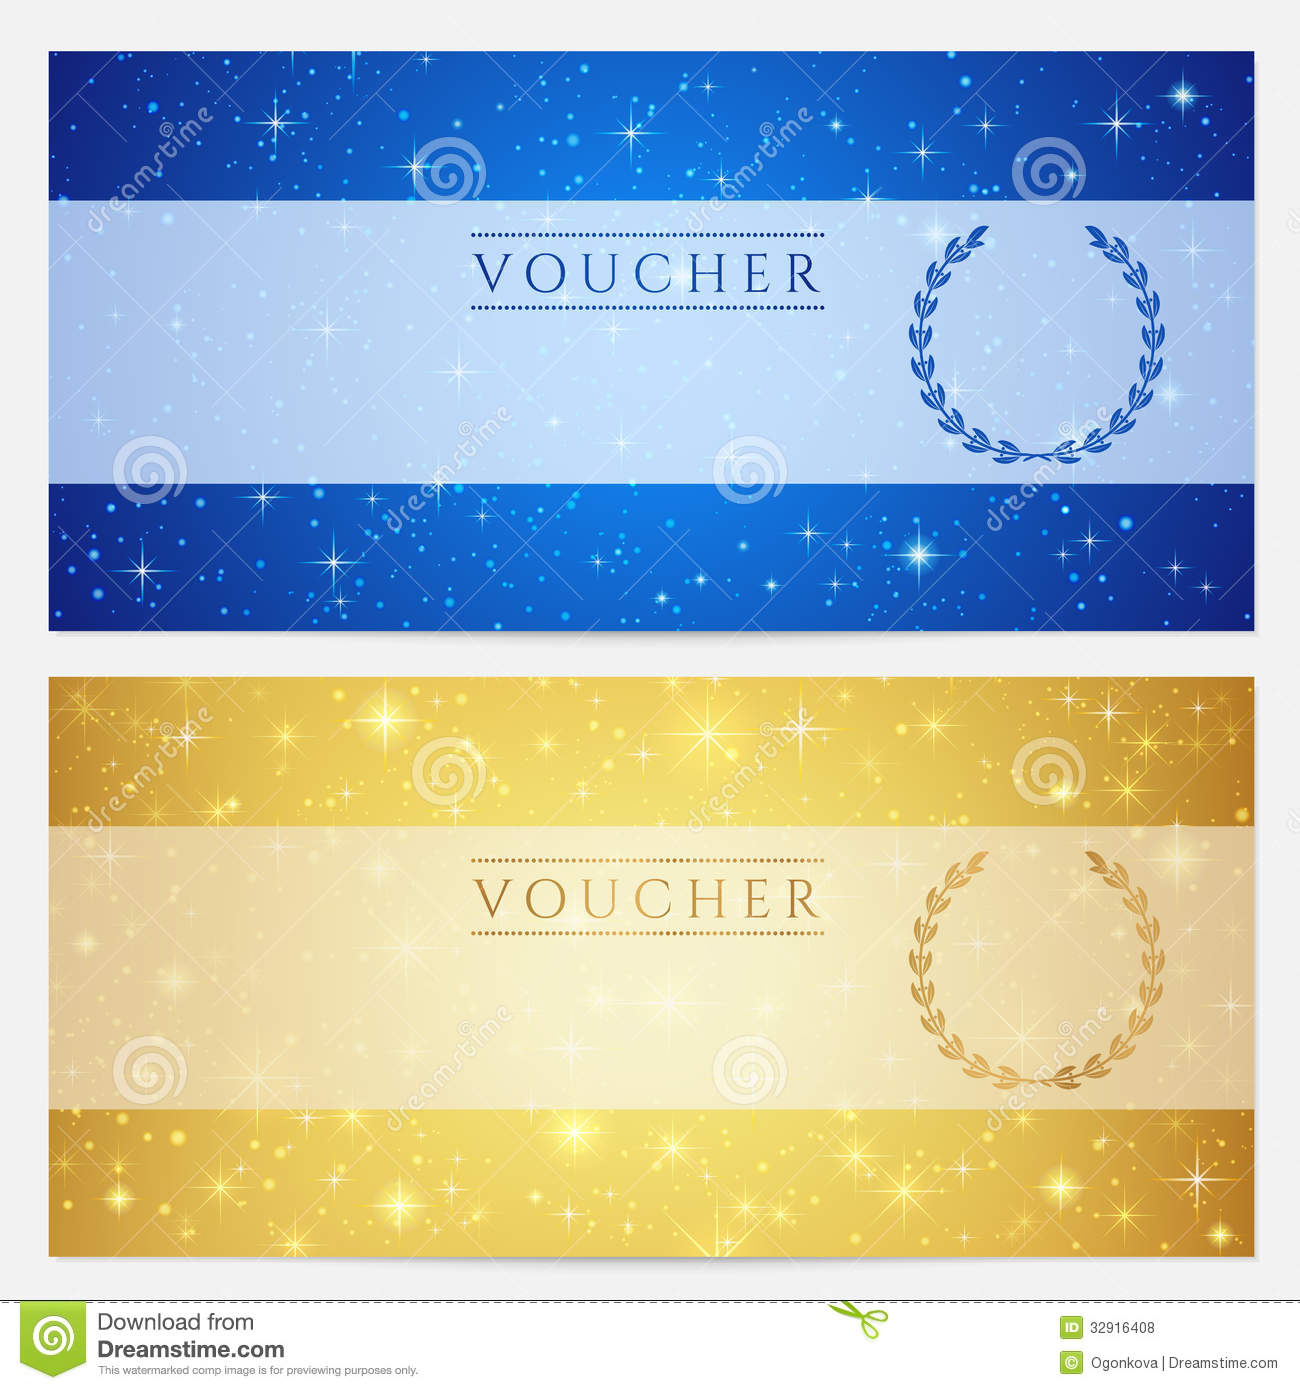 Doc13001390 Voucher Design Template Free Free Voucher Design – Voucher Template Free